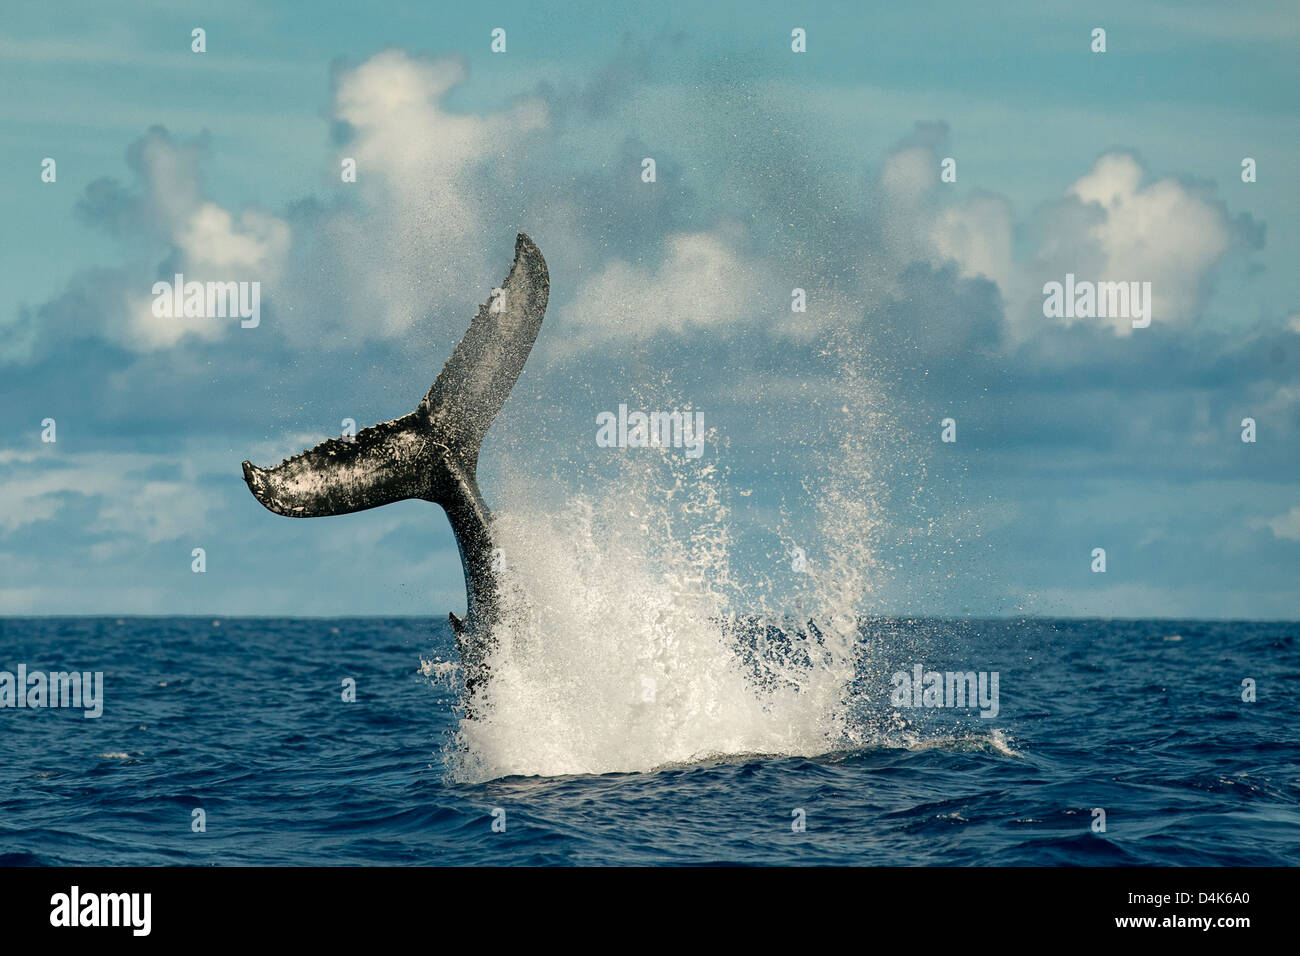 Whale splashing with tail in water - Stock Image